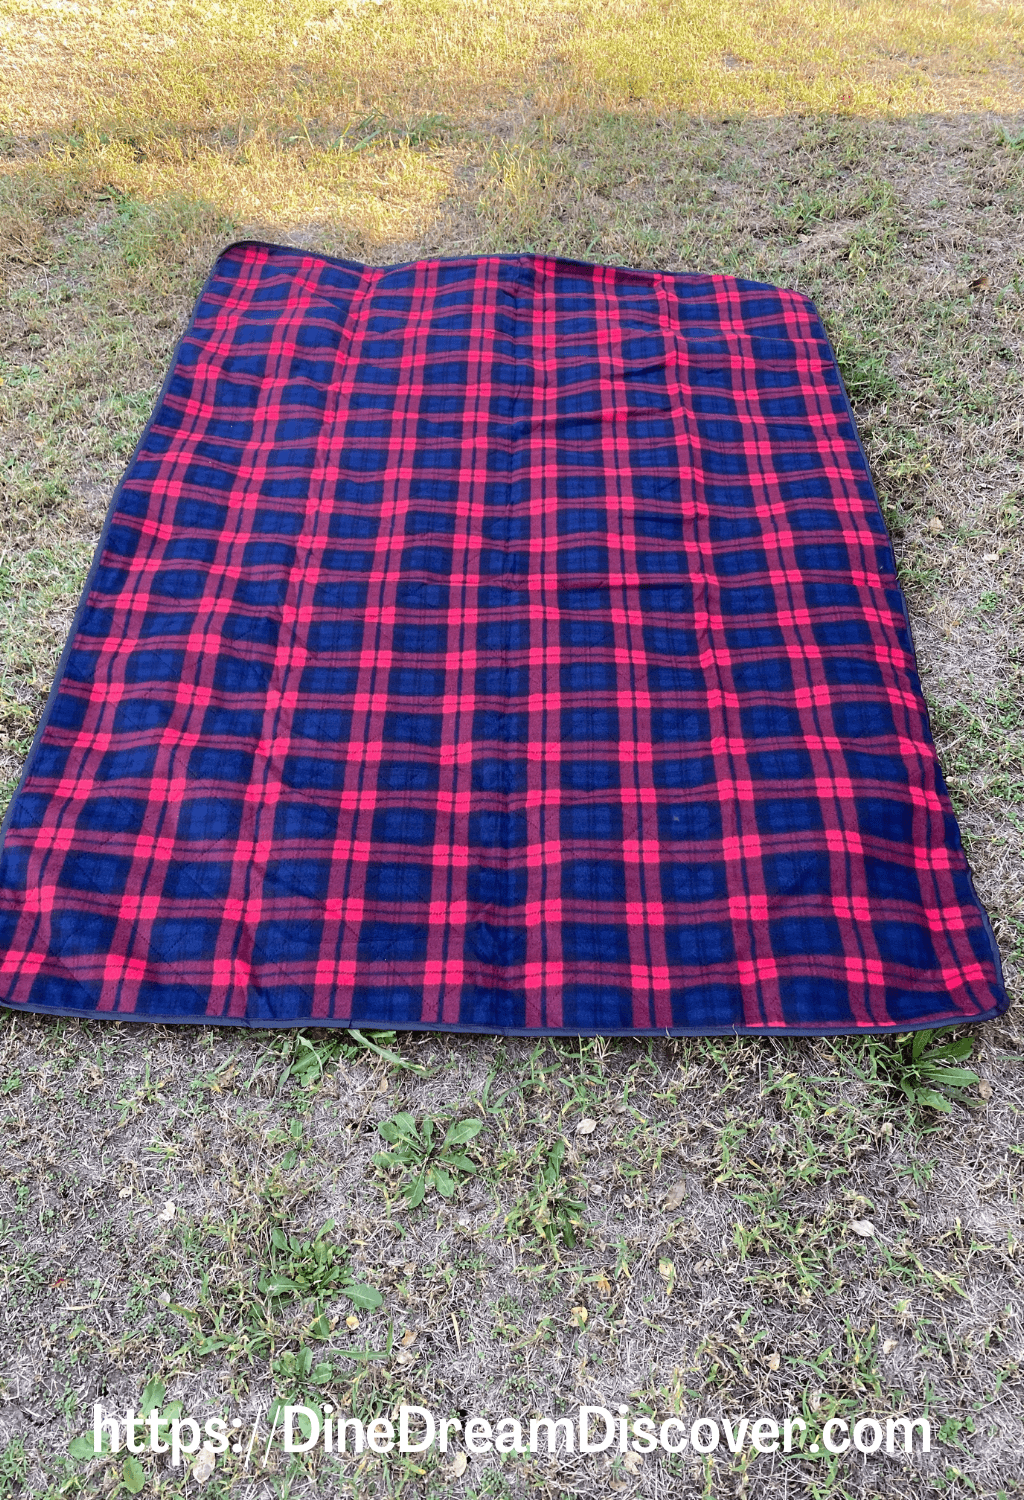 large size camping blanket